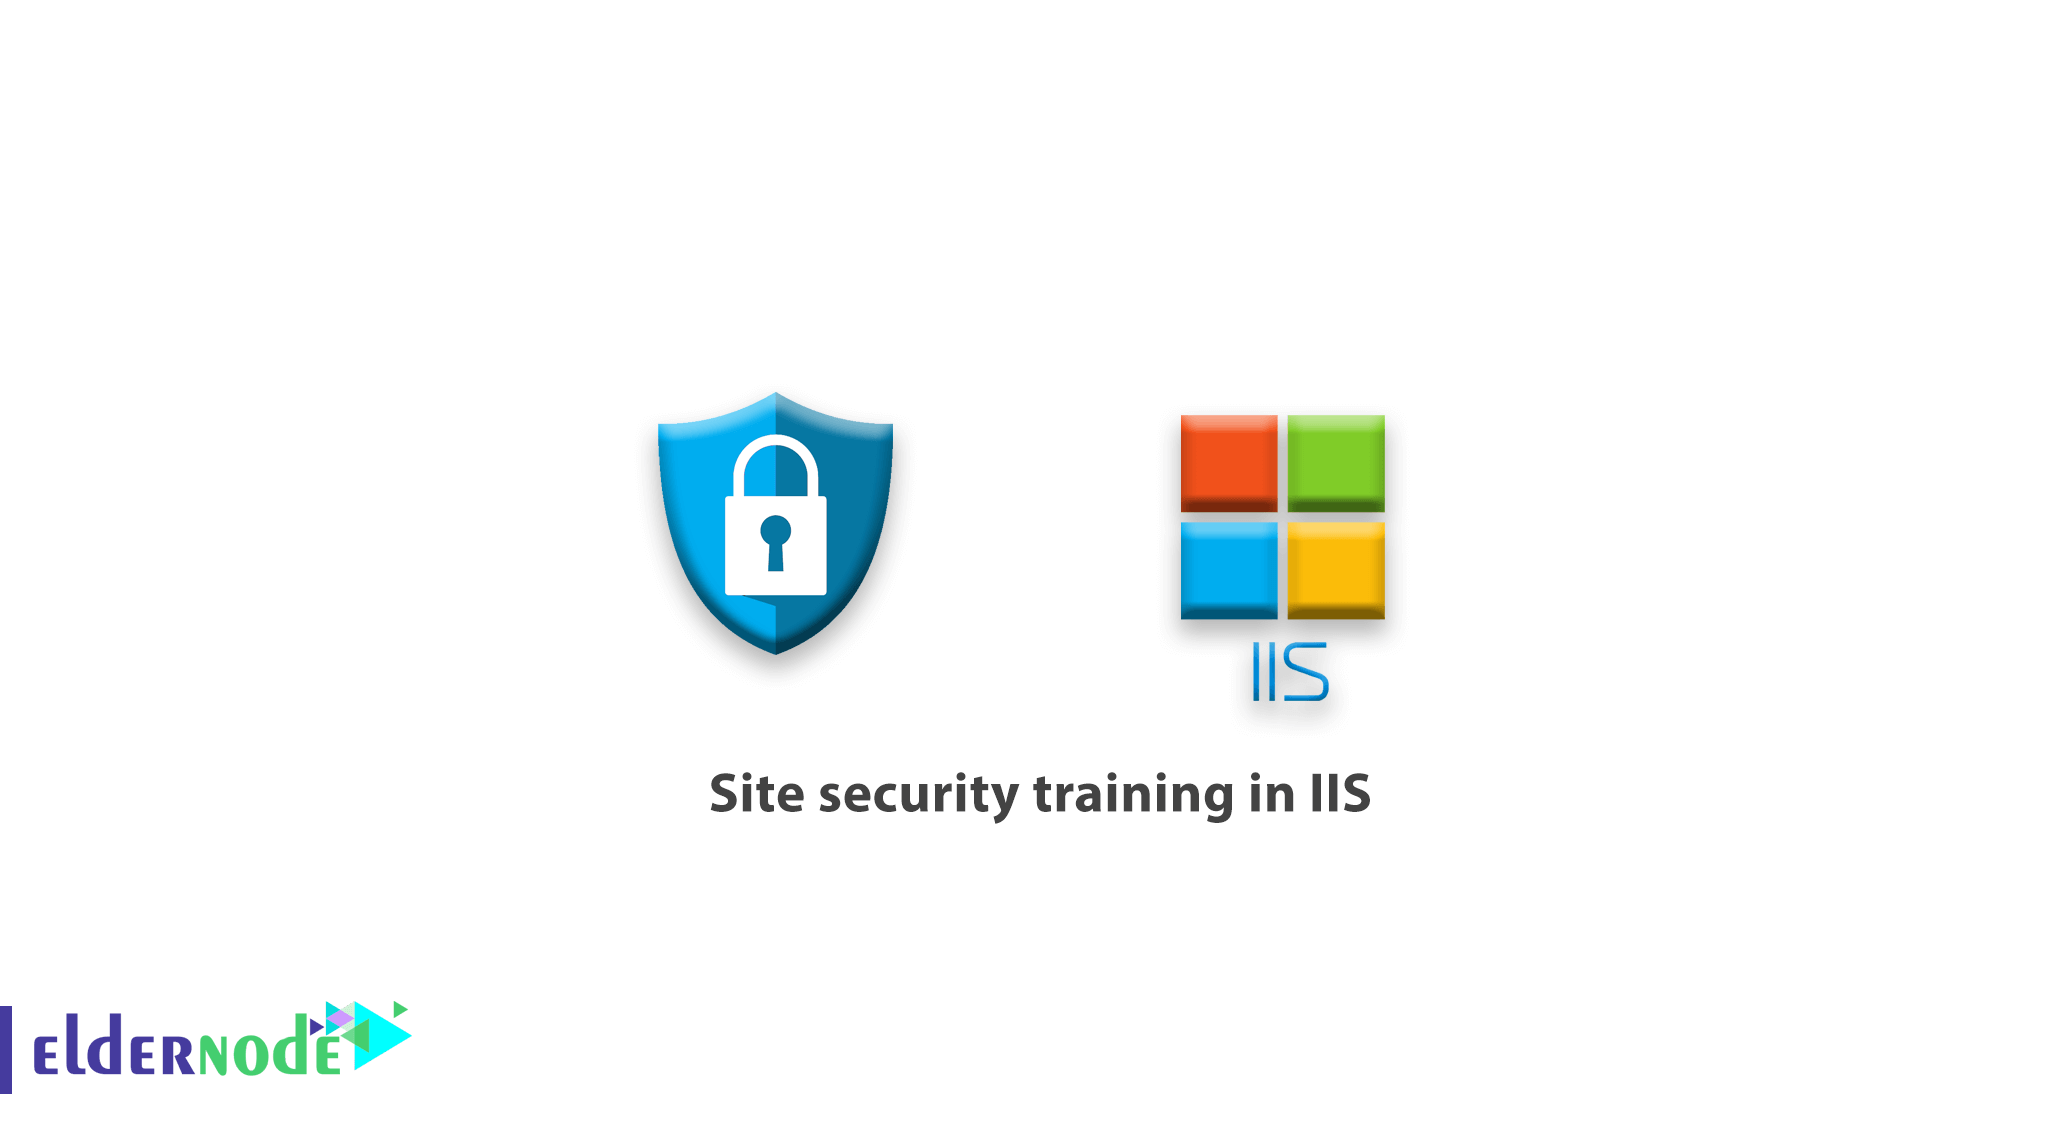 Site security training in IIS